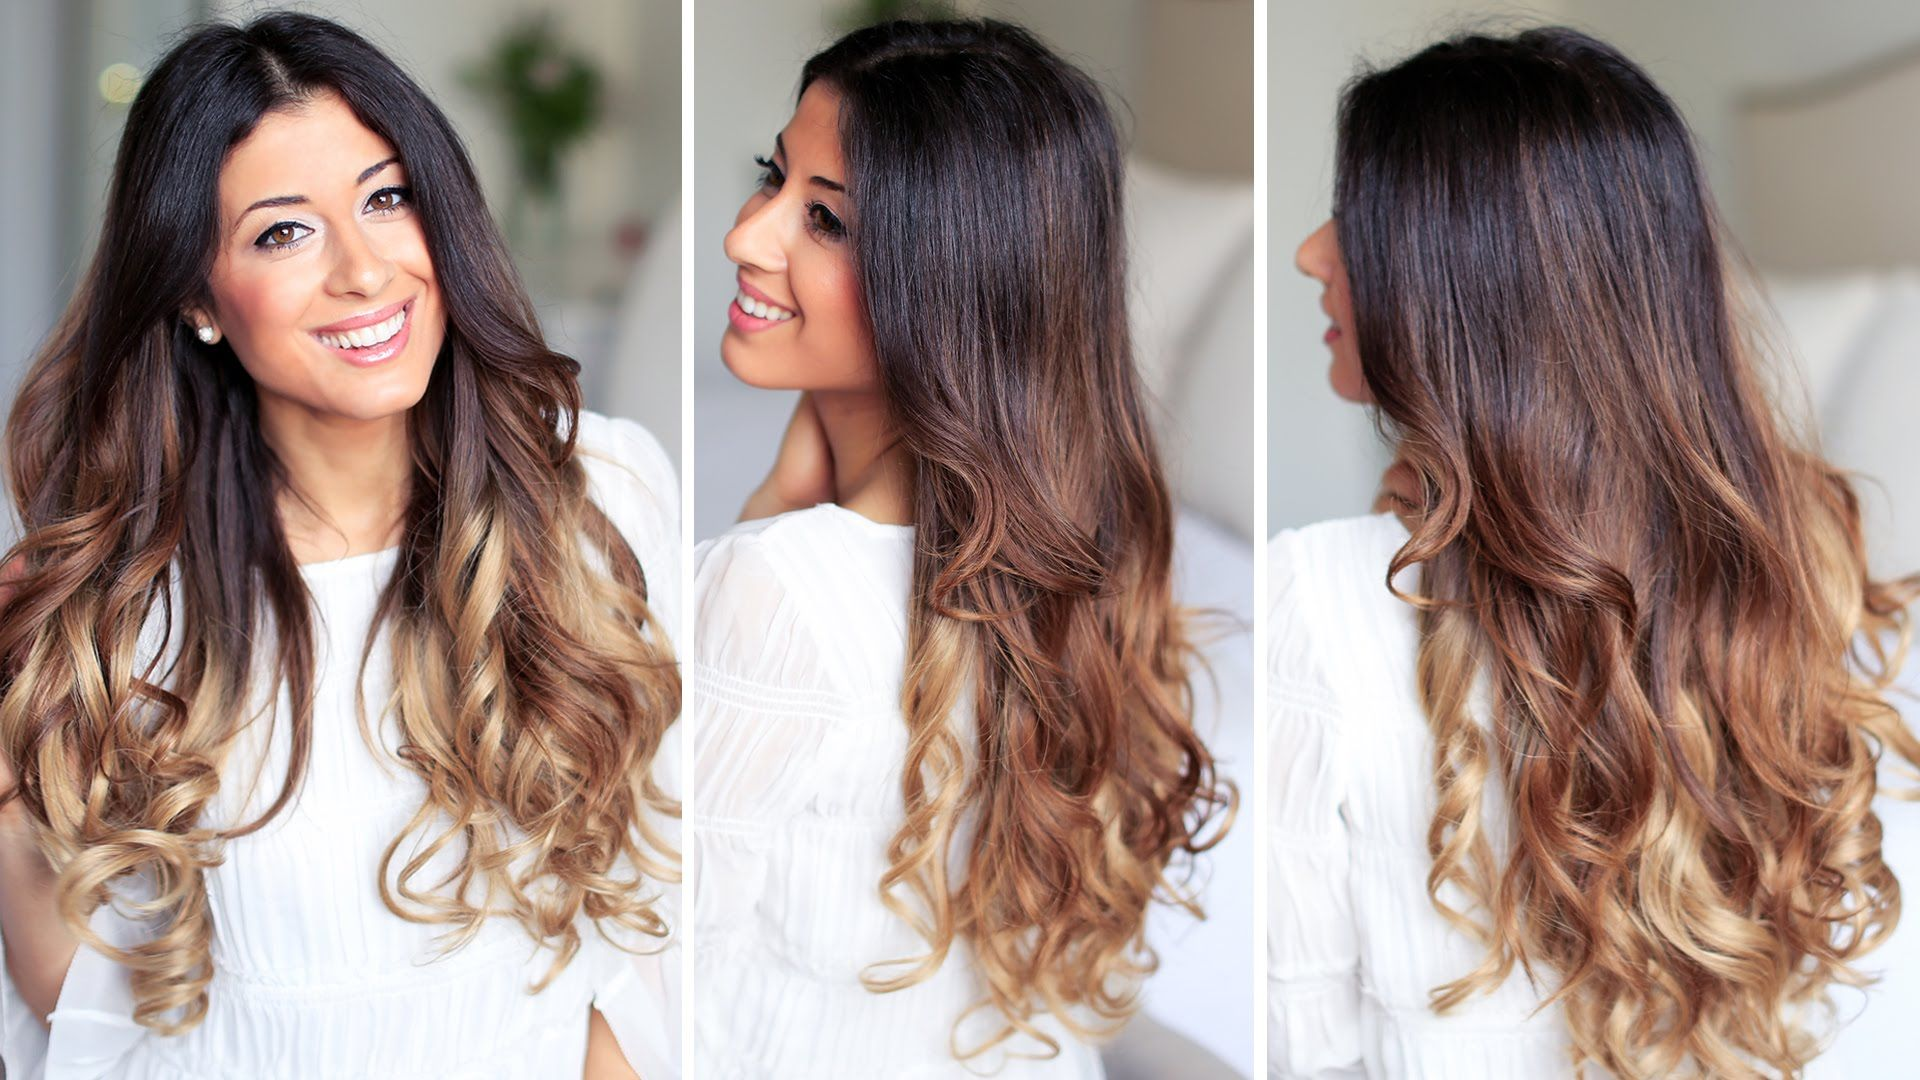 Super Easy And Fast Ways To Get Curly Hair And Perfect Loose Waves With Images How To Curl Your Hair Easy Hairstyles